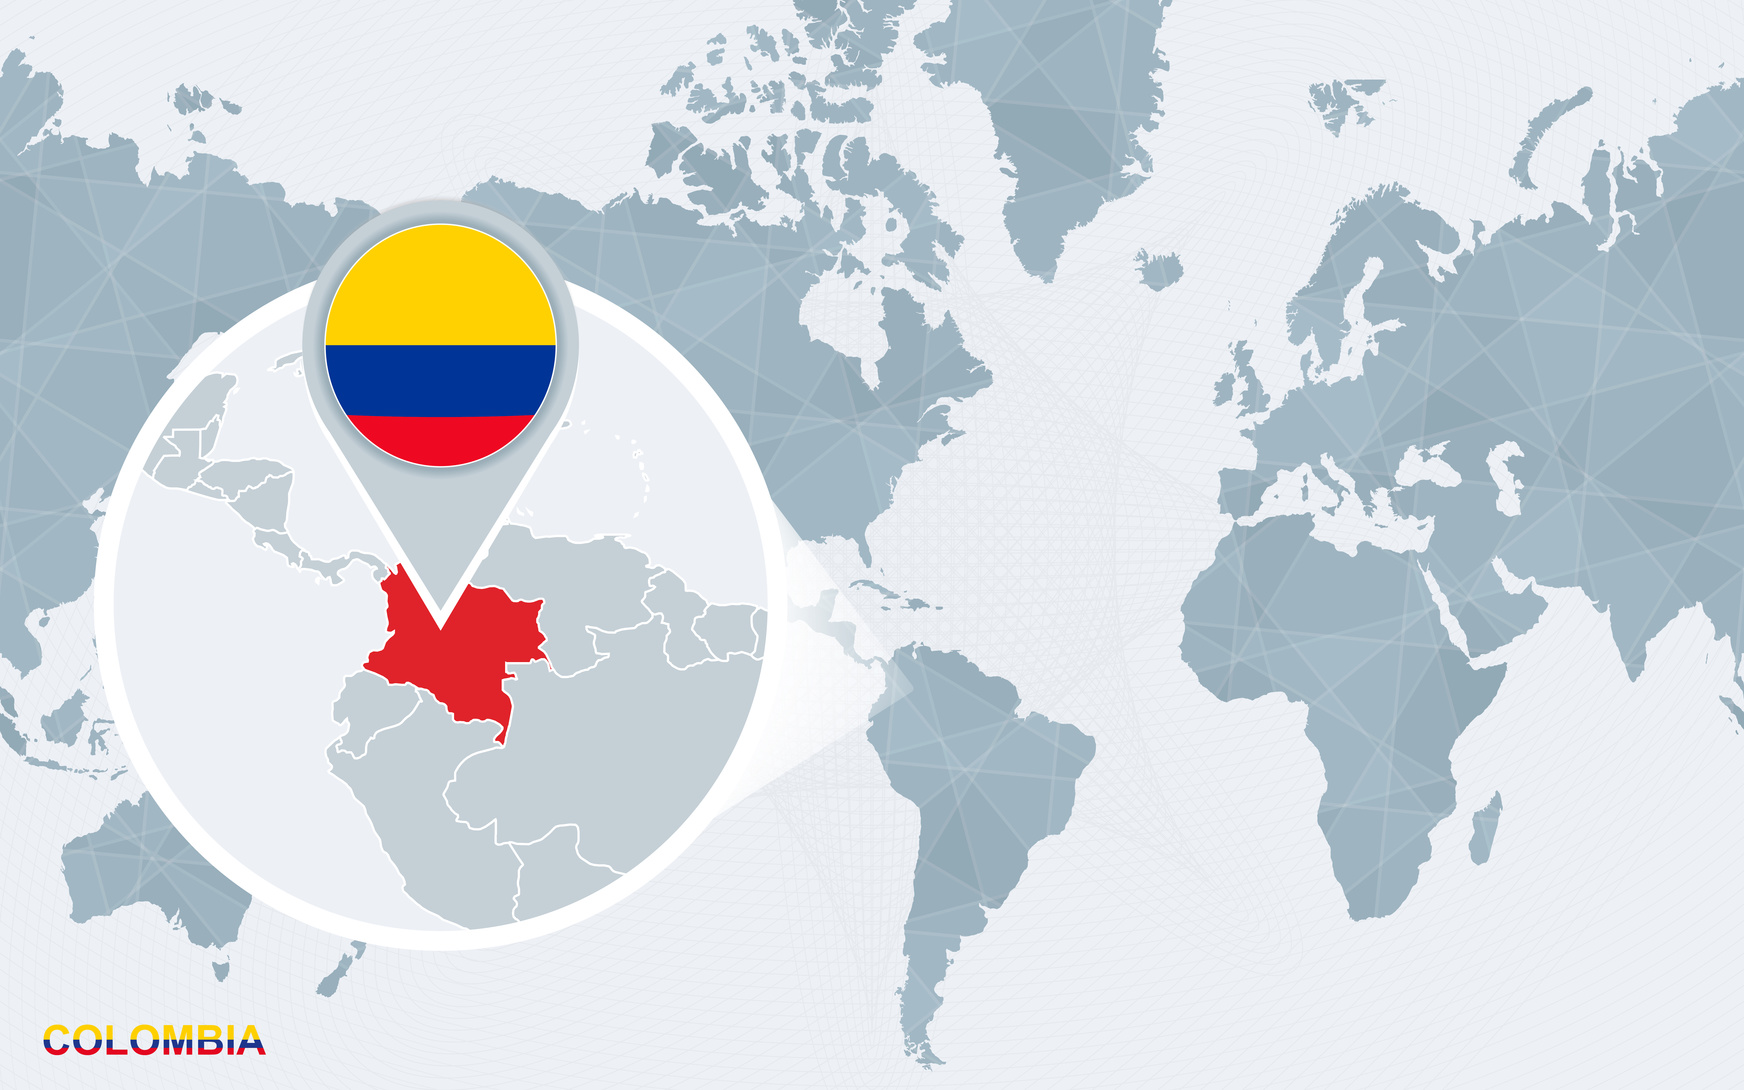 Colombia's fintech wakes up to open banking